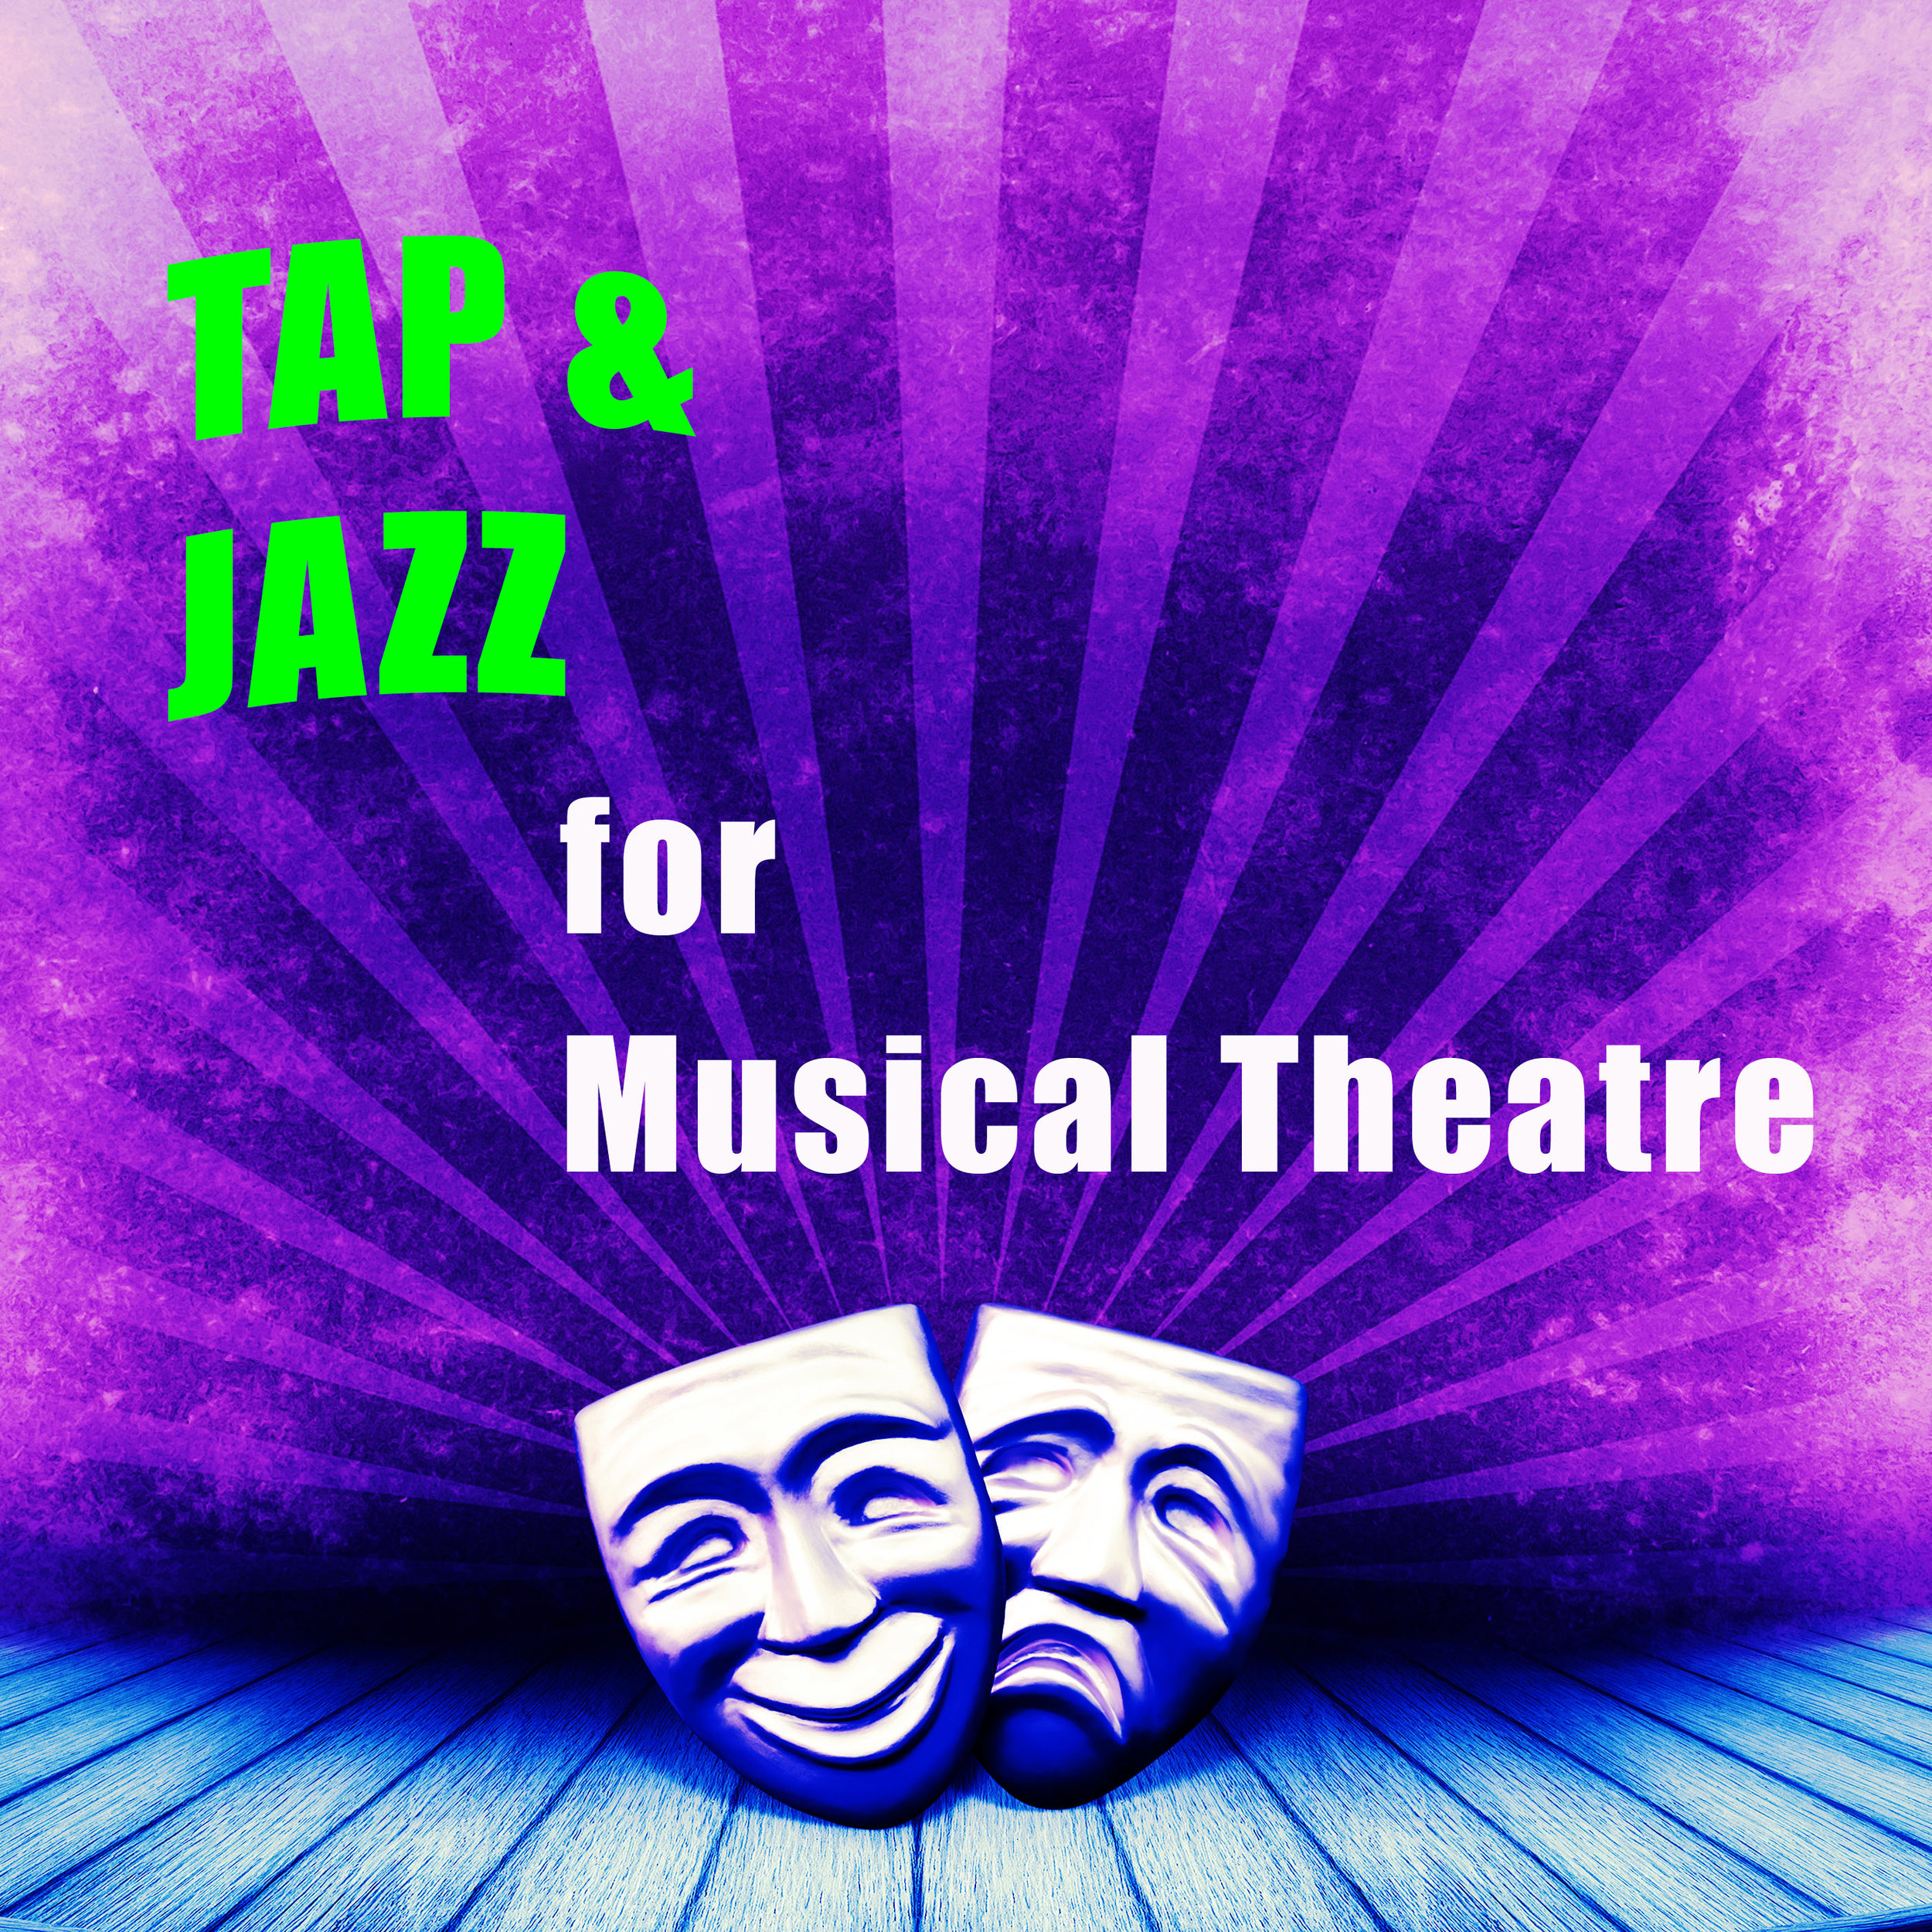 Tap and Jazz for Musical Theatre.jpg